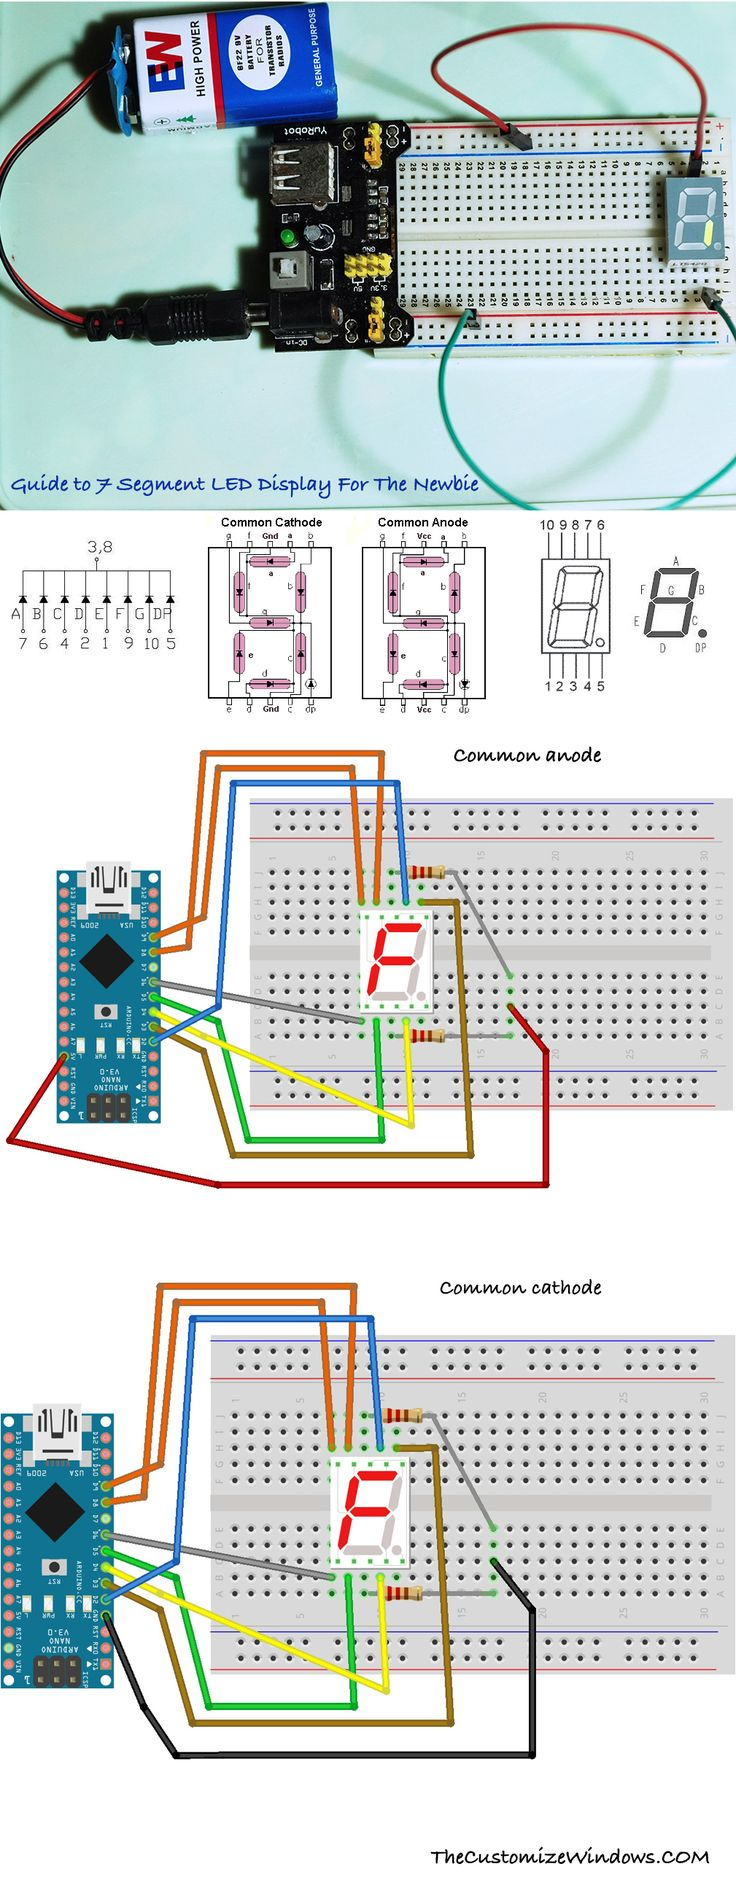 321 Best Electronics Images On Pinterest Arduino Vertical Etching Tank For Diy Pcb Electronicslab 7 Segment Led Display Tutorial Dummies